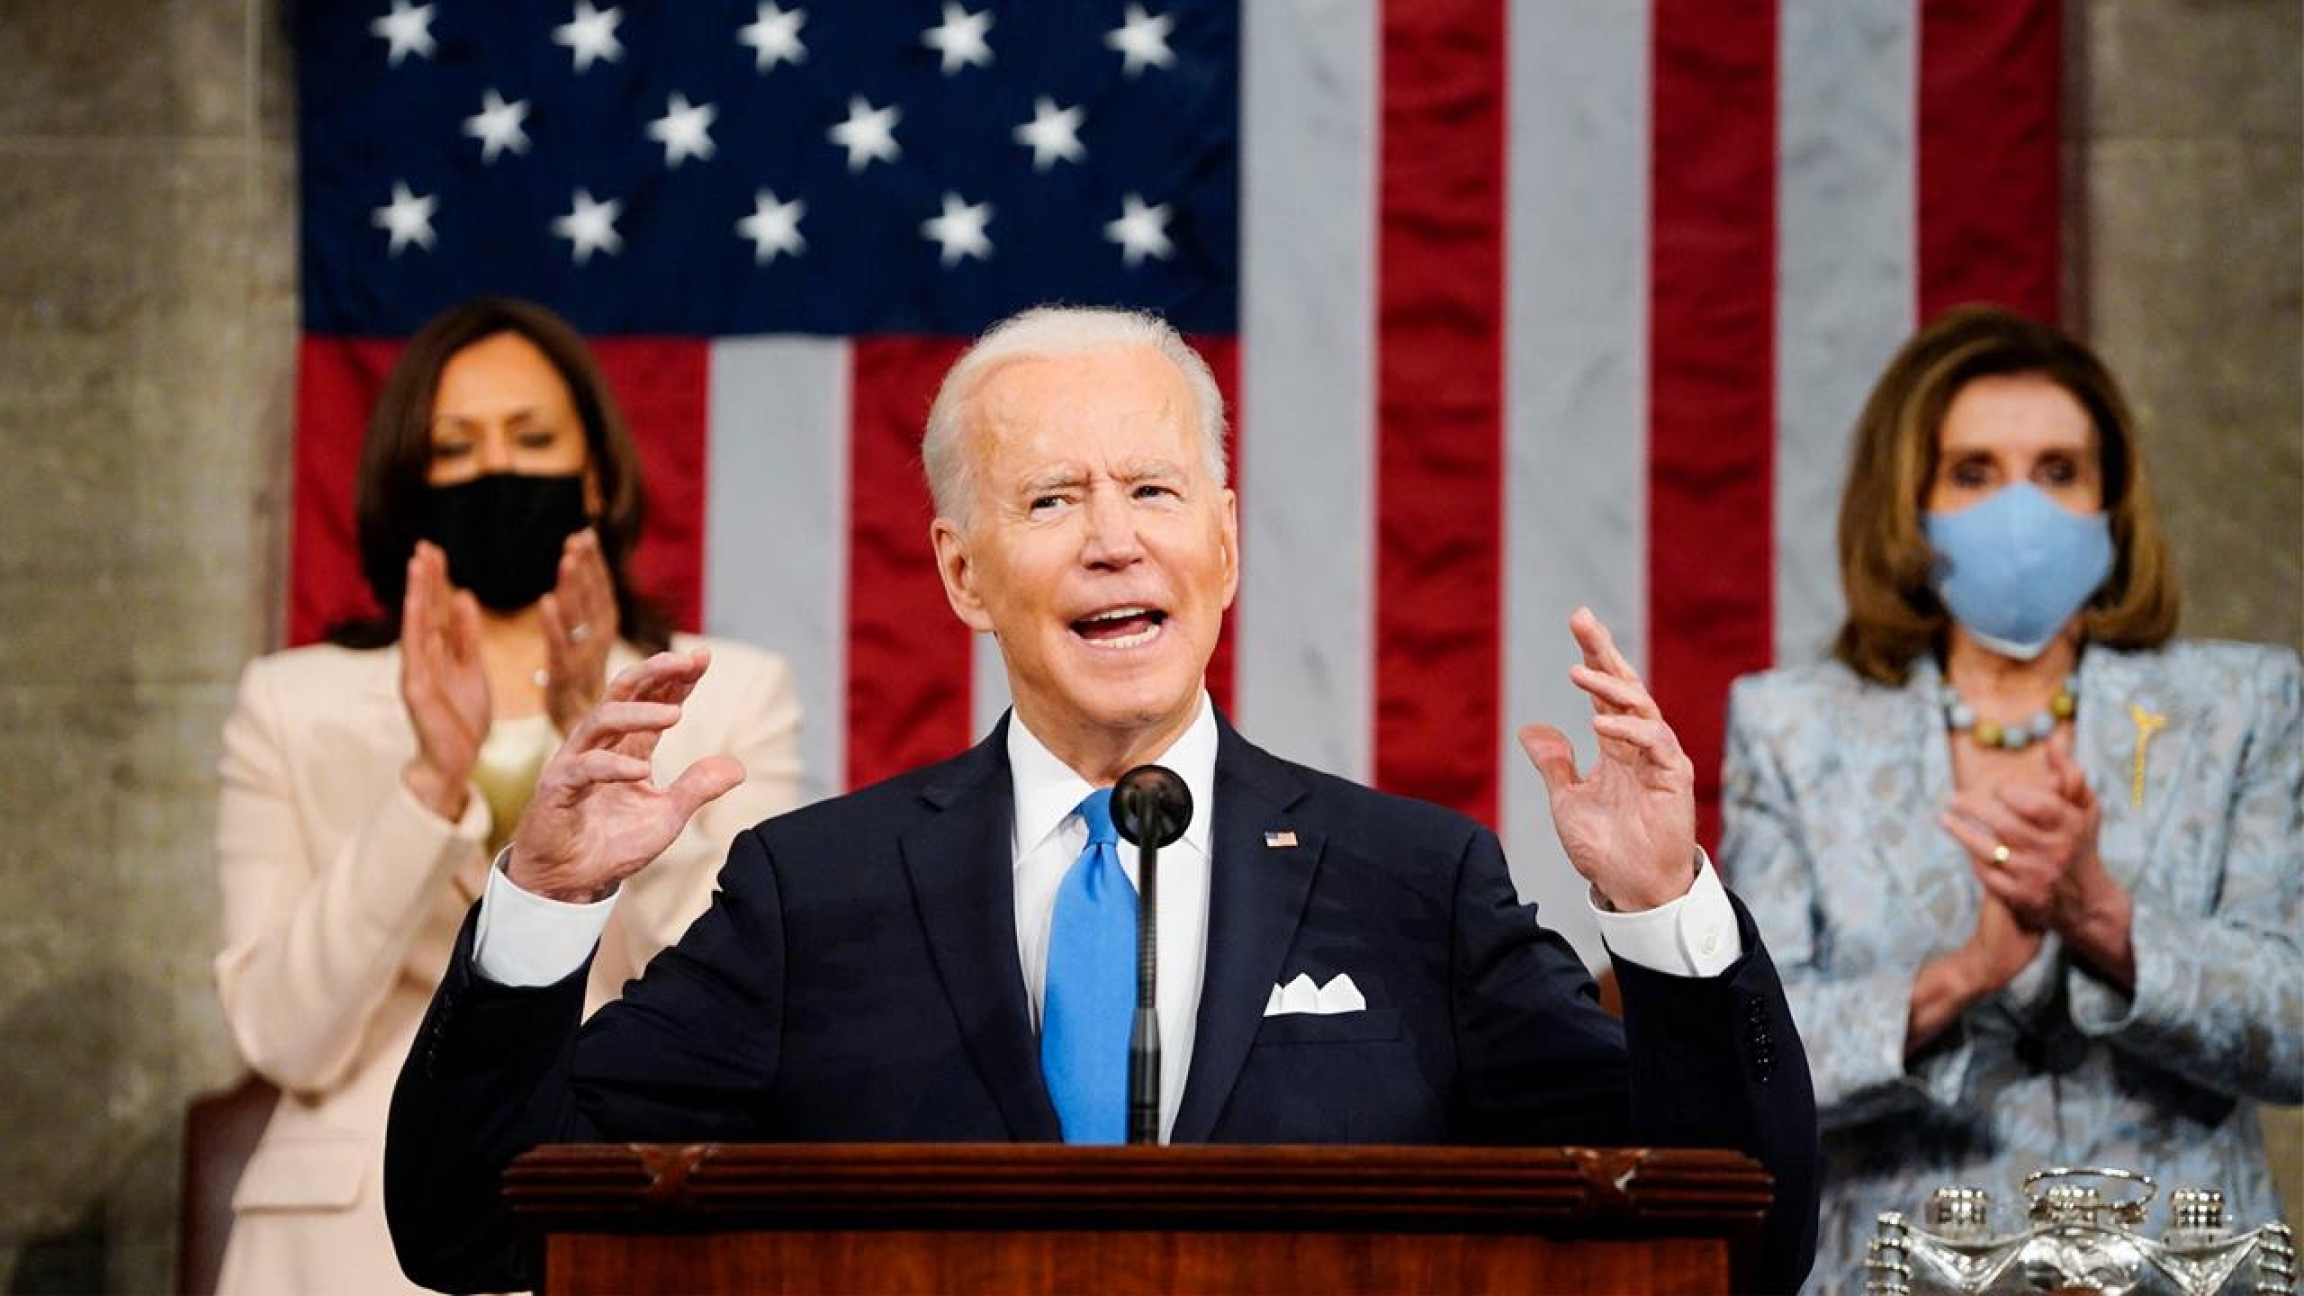 Biden lifts his hands at podium wearing a suit with Harris and Pelosi standing behind him, clapping.